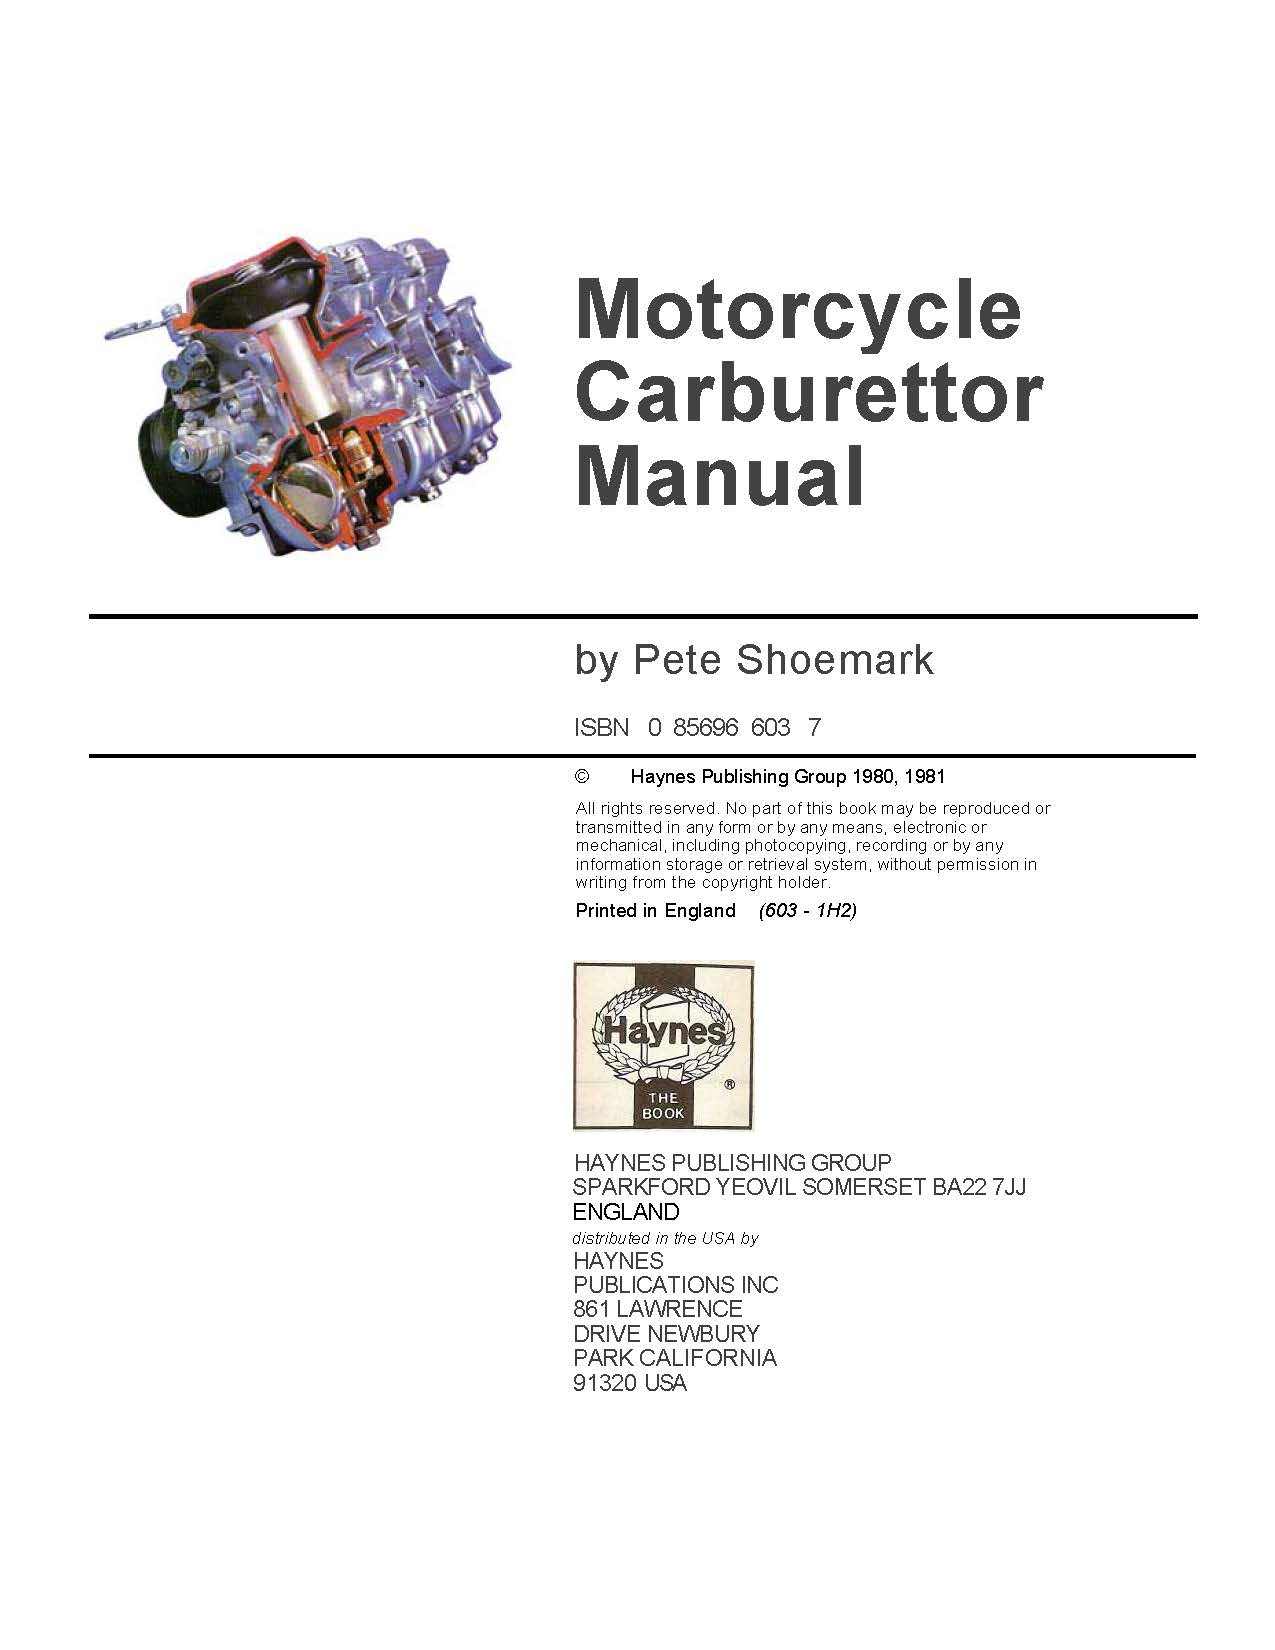 Pages from misc haynes carburator manual 1981 29042016 0106